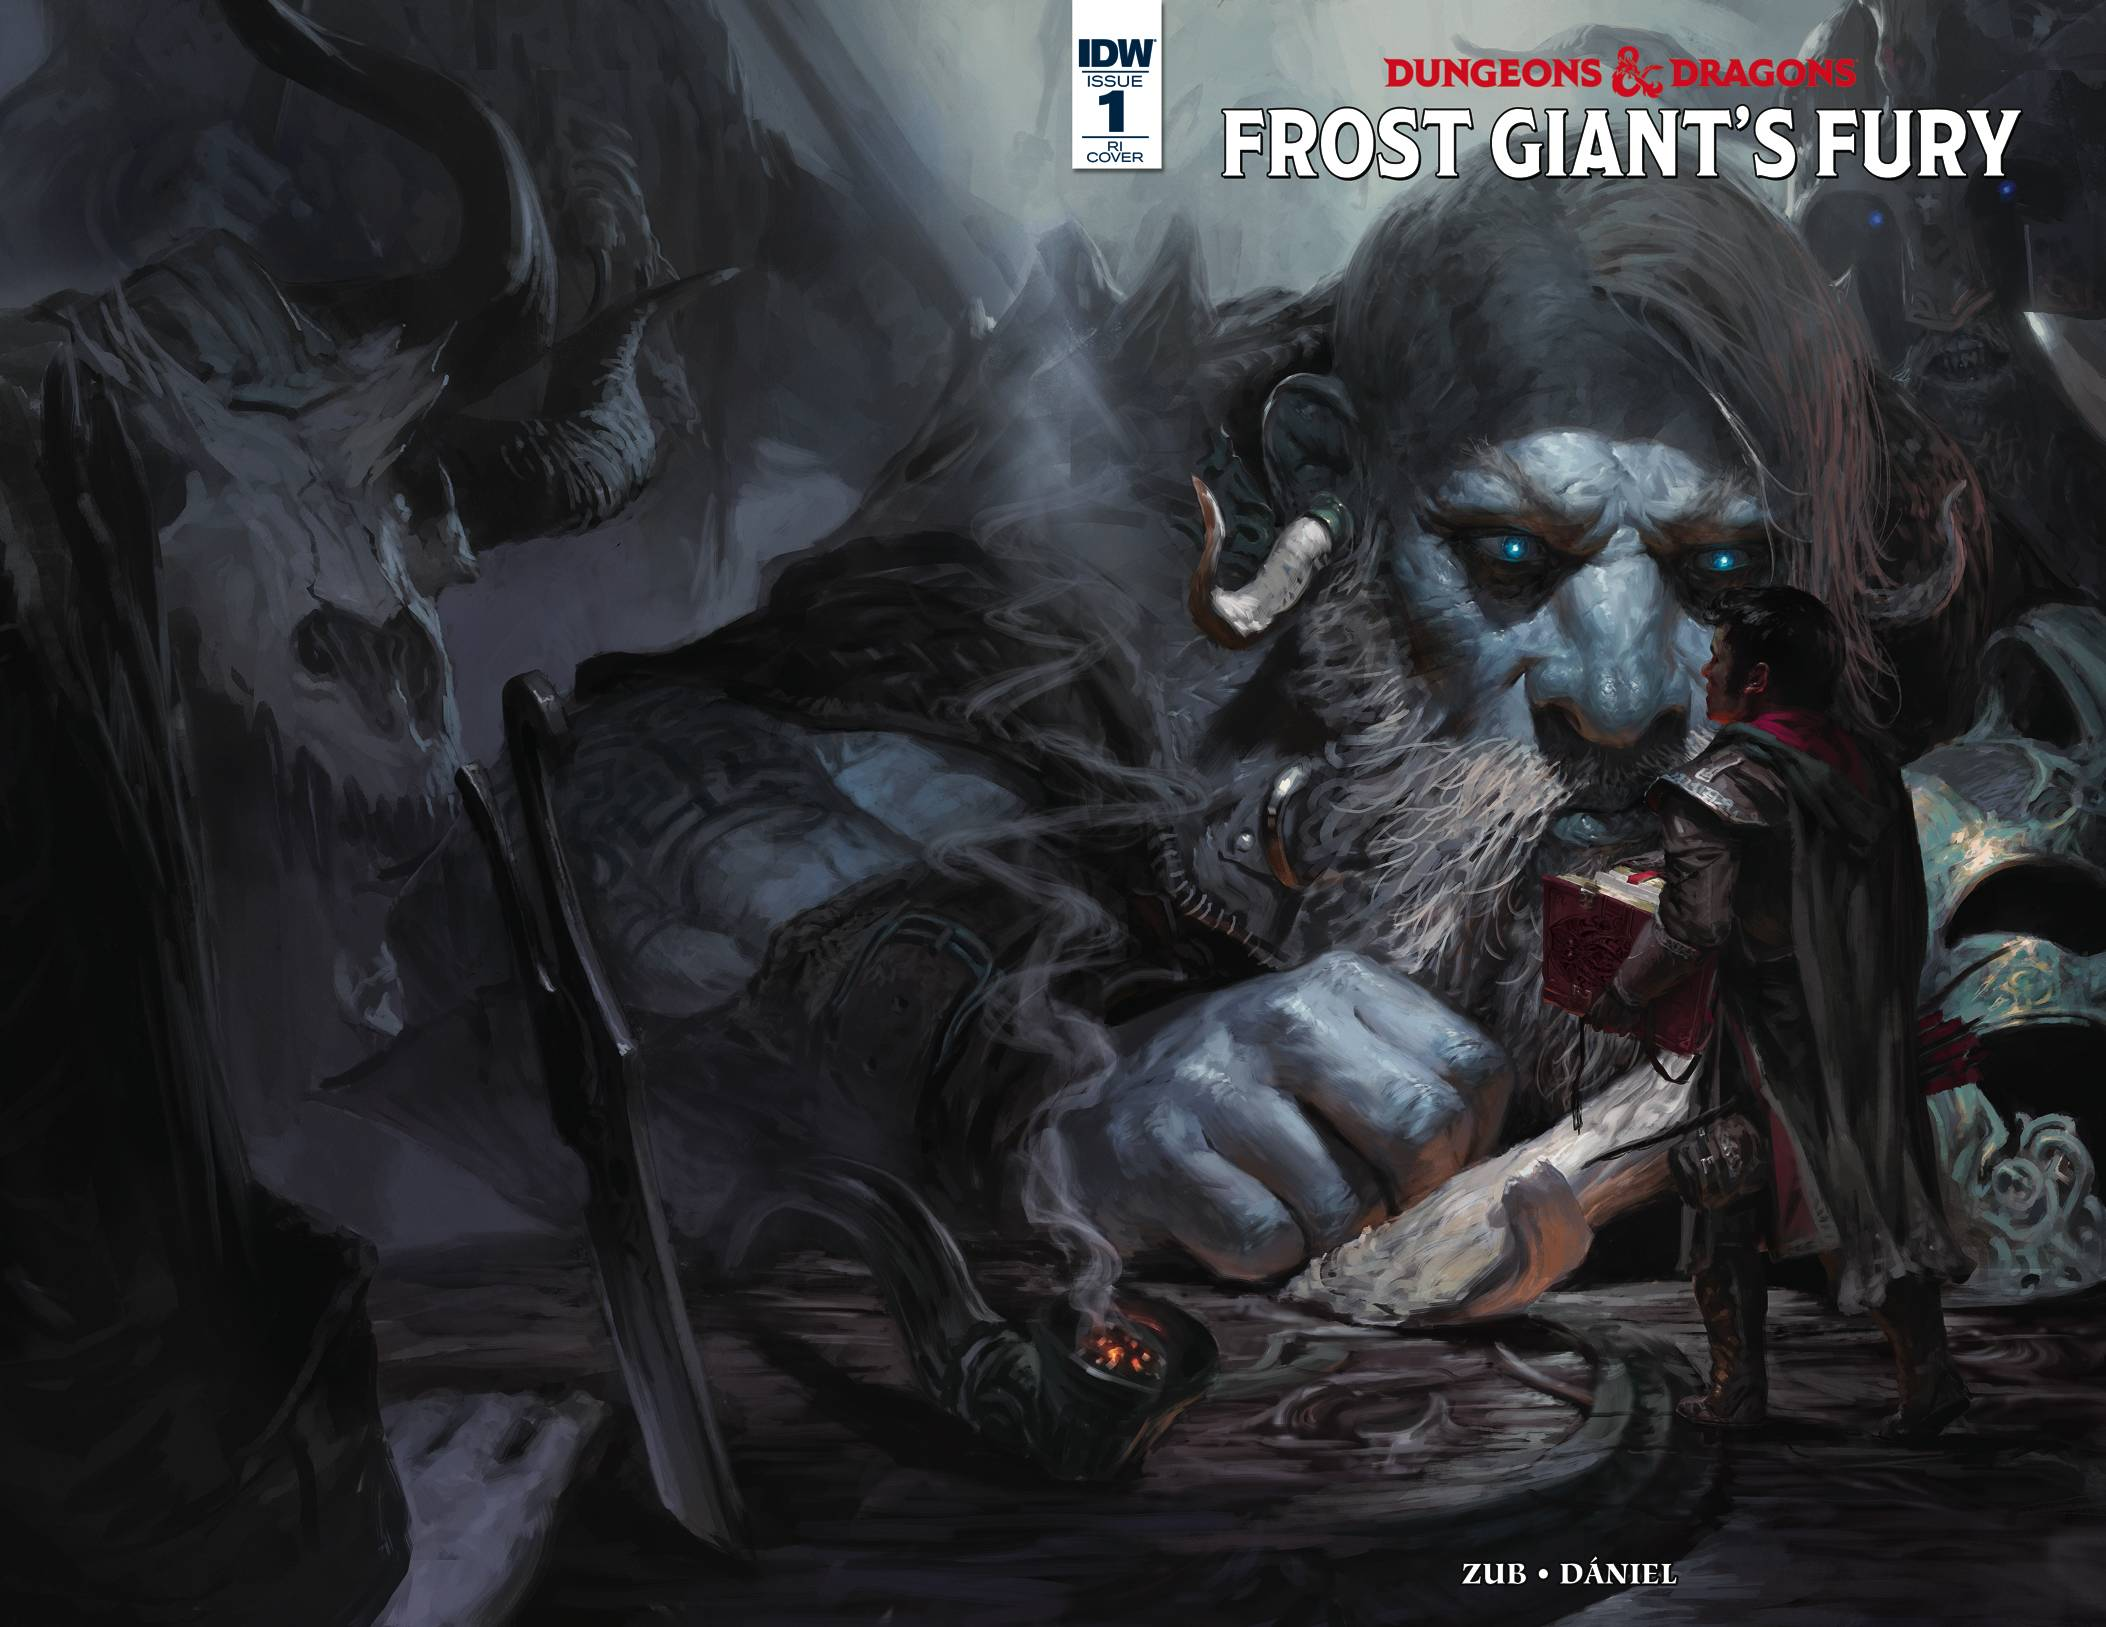 DUNGEONS & DRAGONS FROST GIANTS FURY #1 10 COPY INCV